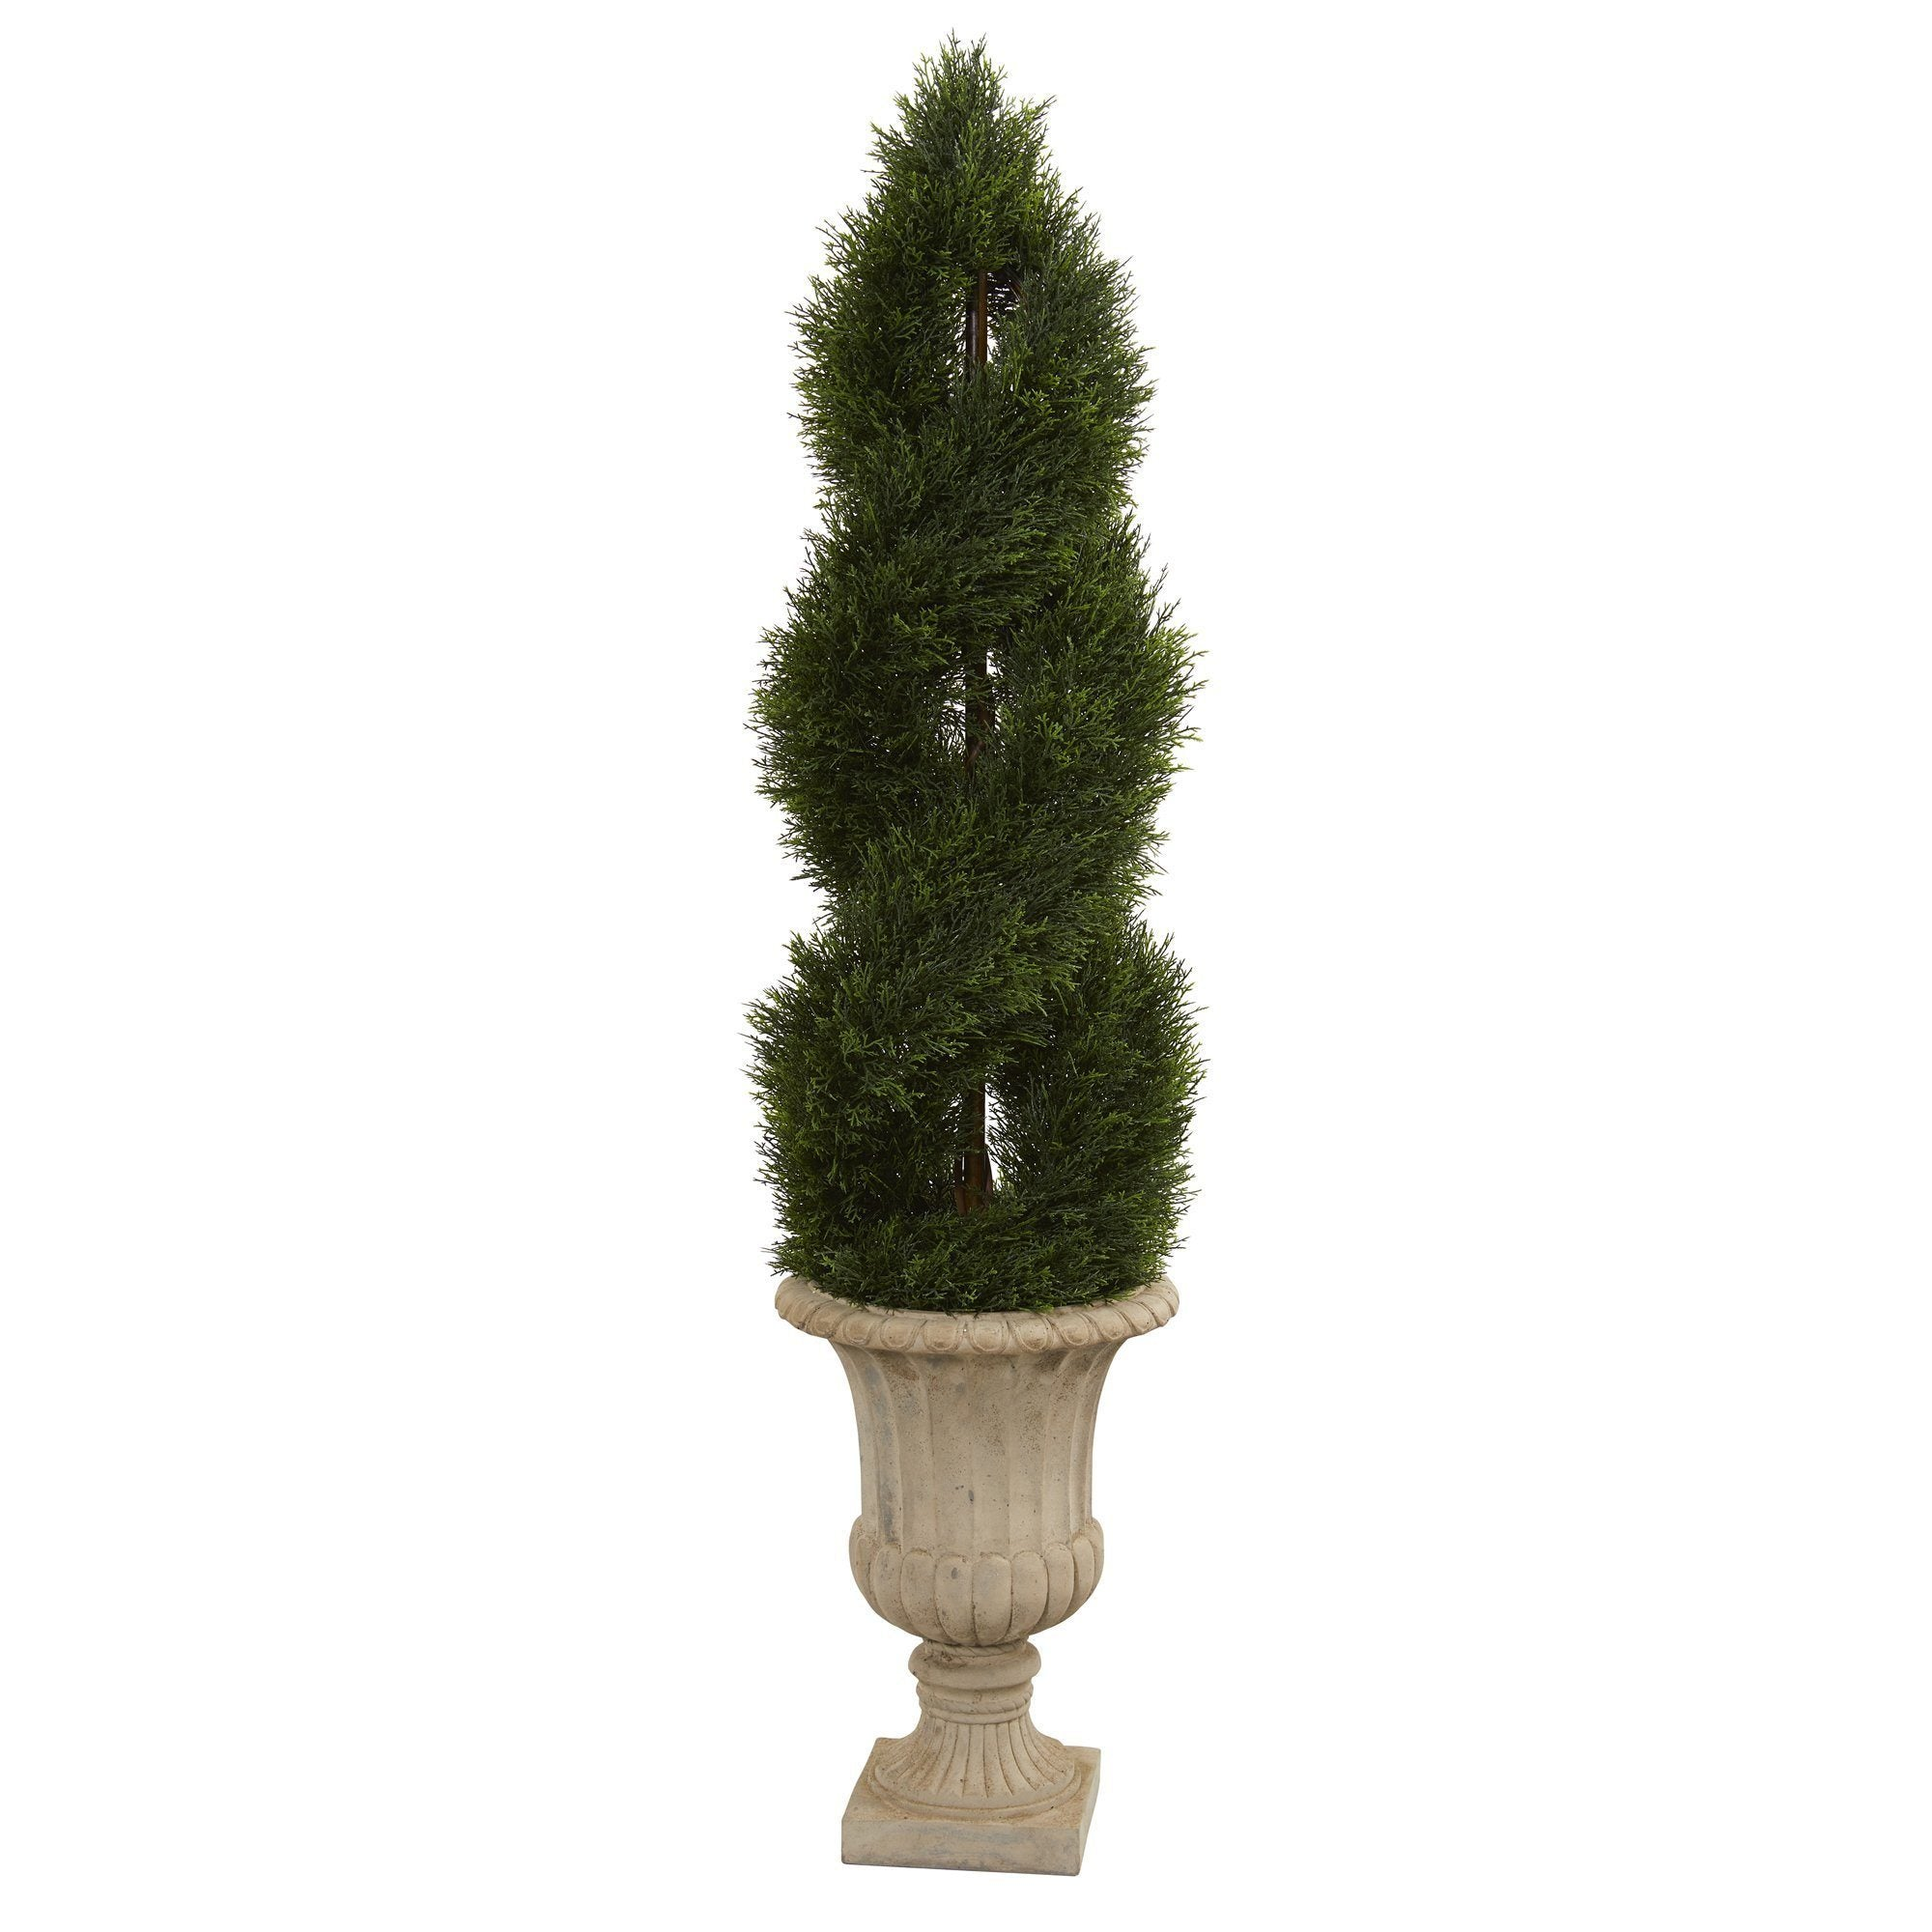 5 Double Pond Cypress Artificial Spiral Topiary Tree In Urn Uv Resistant Indoor Outdoor Nearly Natural